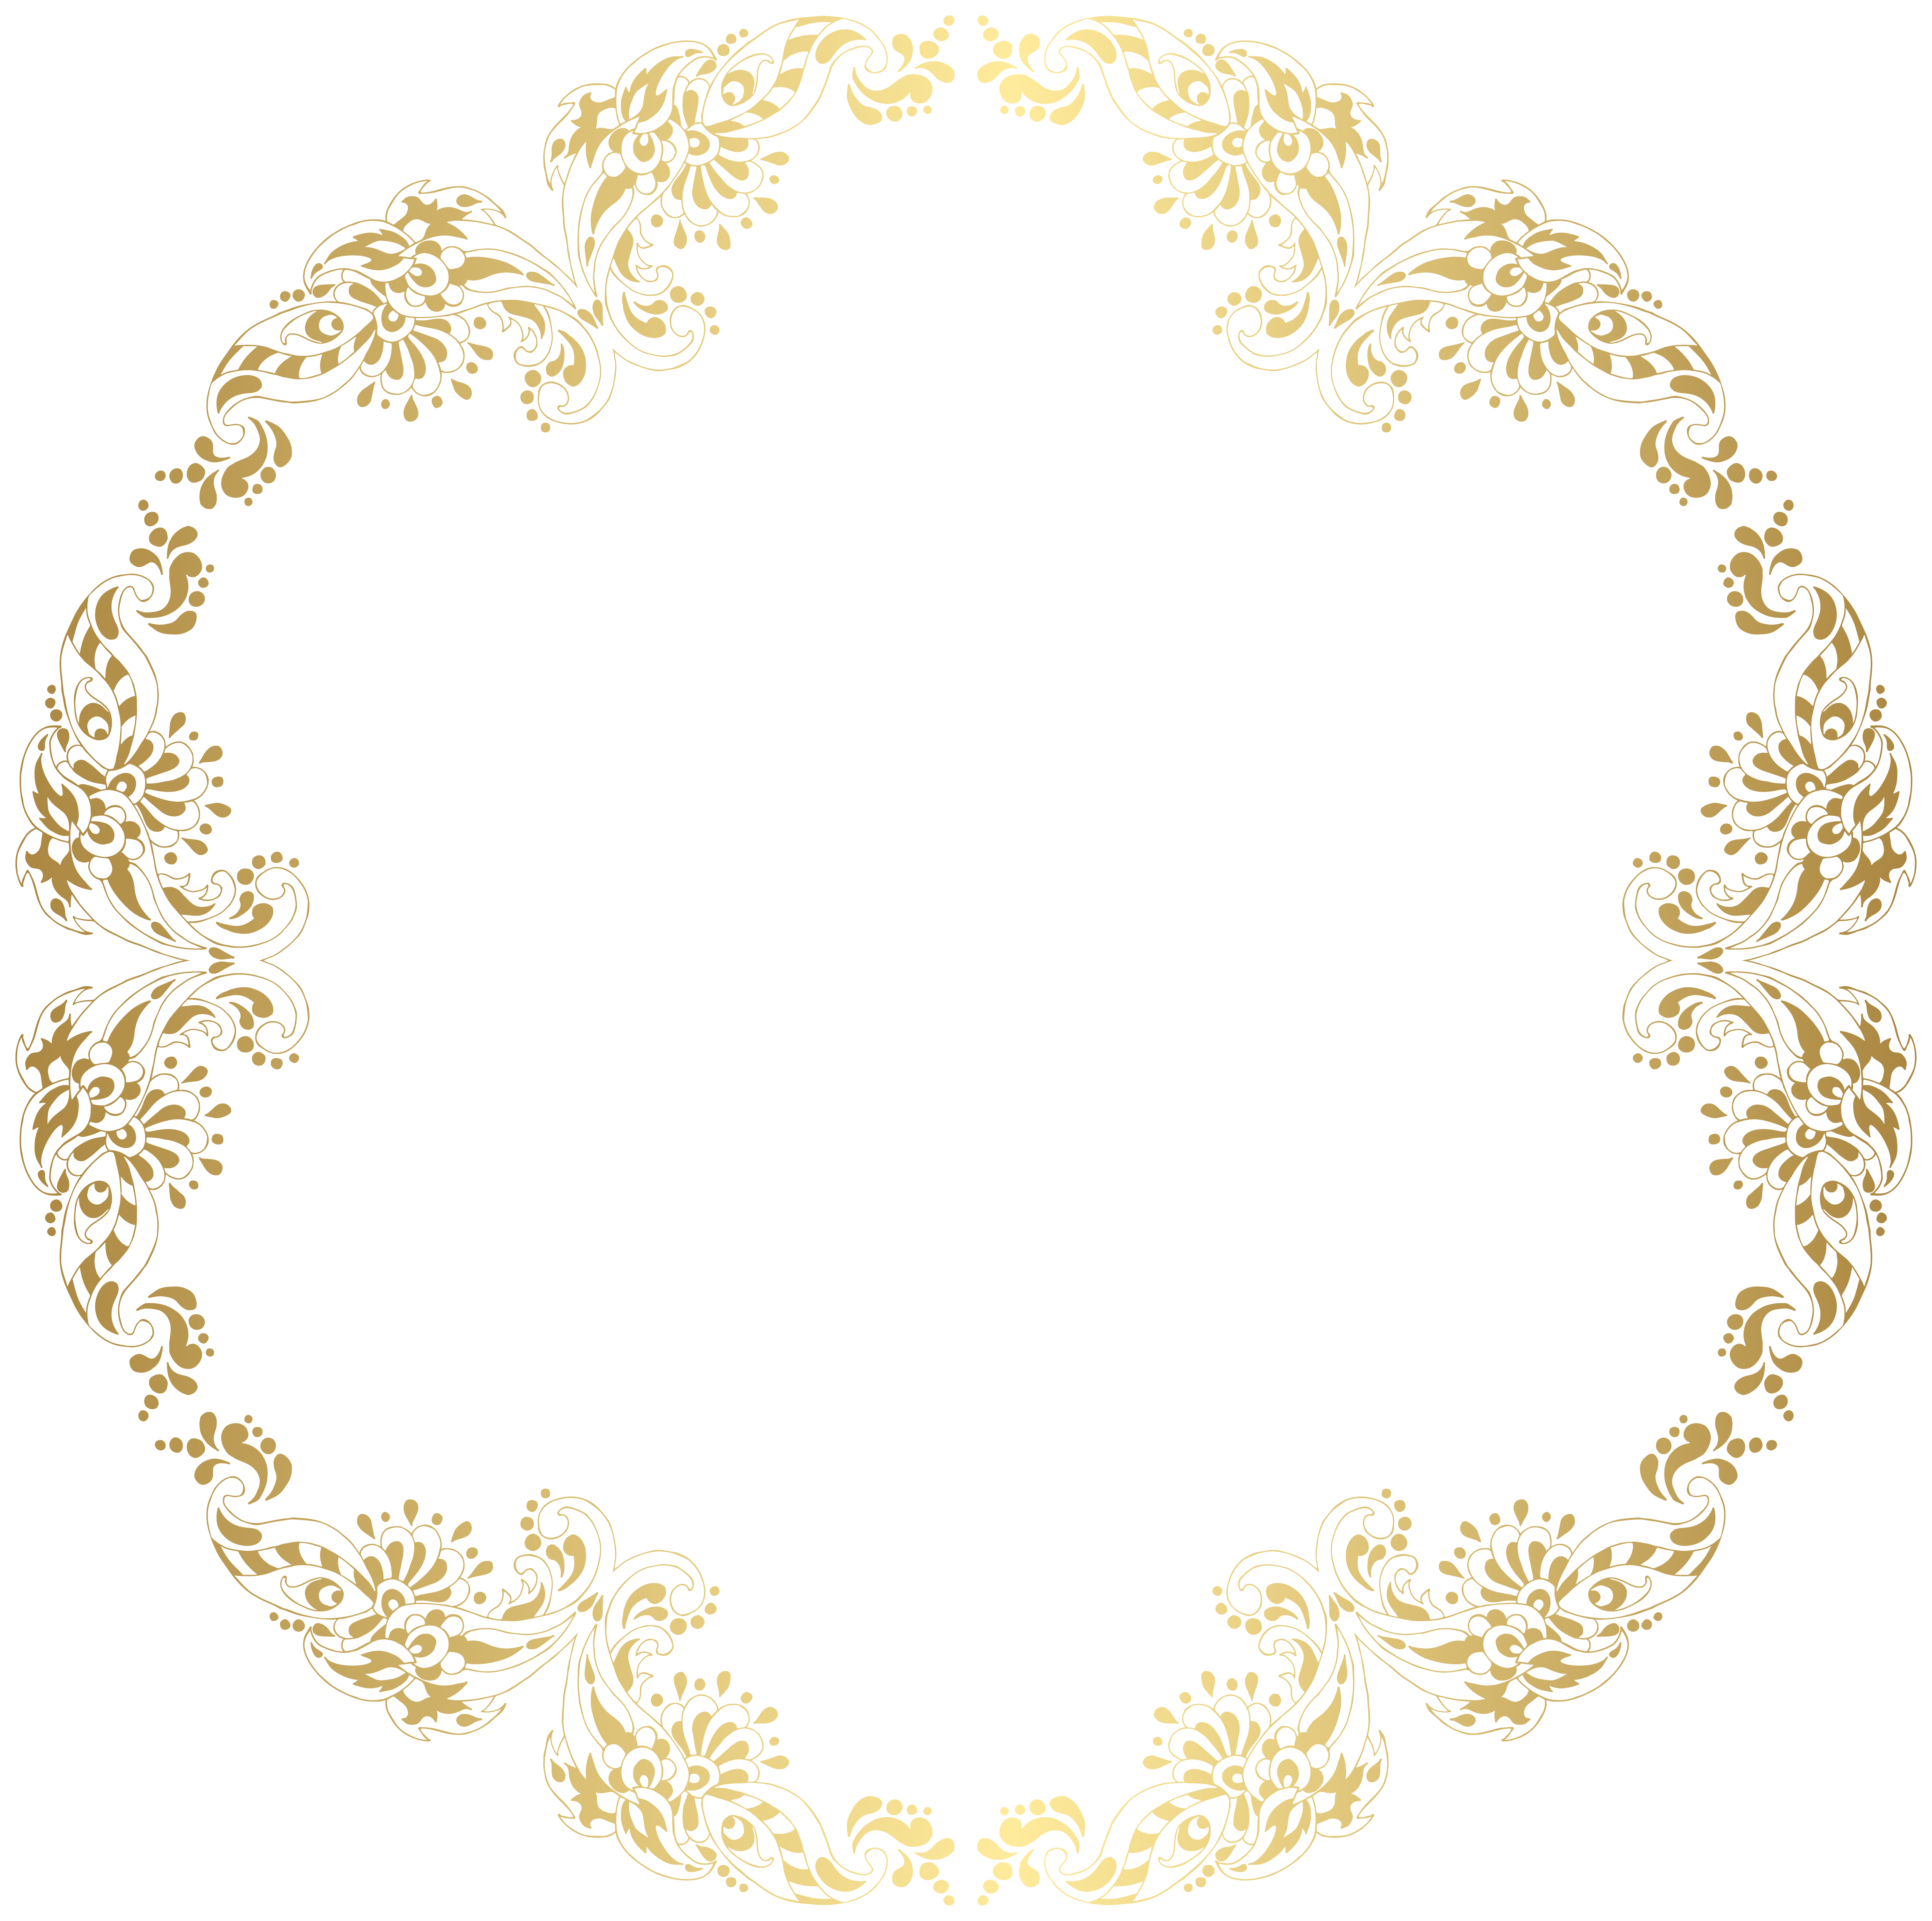 Fashion border png. Floral gold round transparent